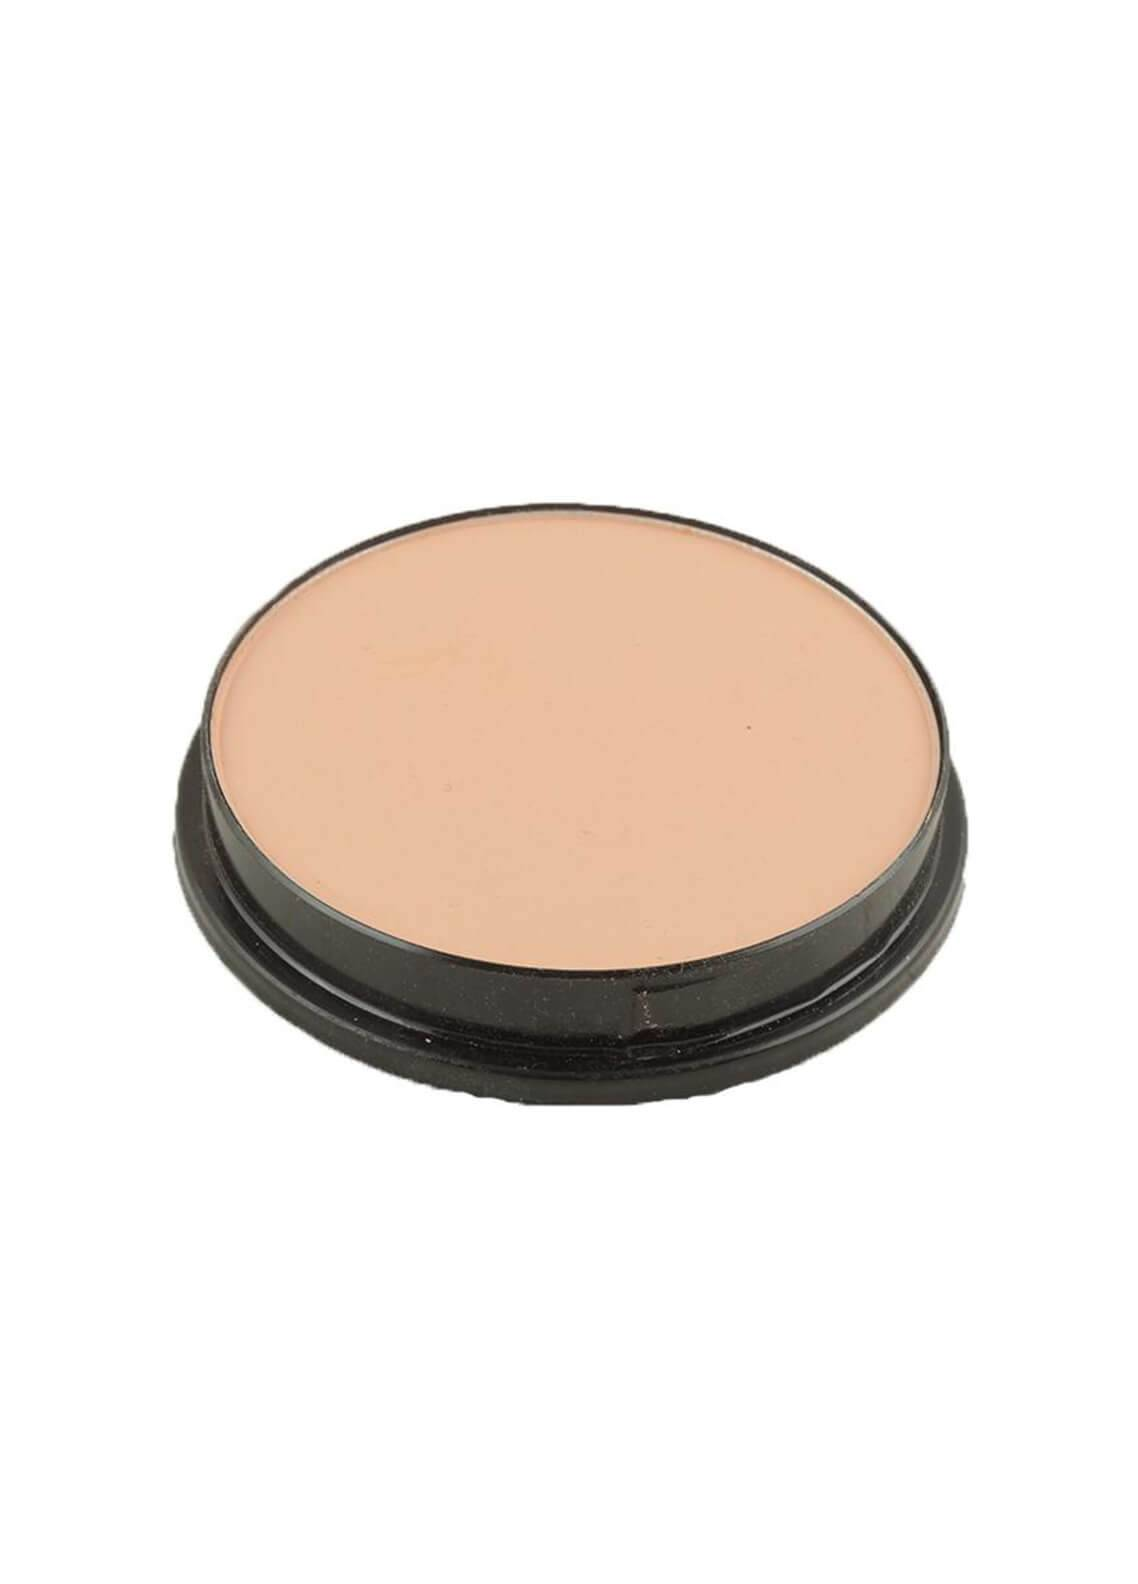 Sophia Asley Oil Free Pan Cake with SPF45 UV Protection - FS36